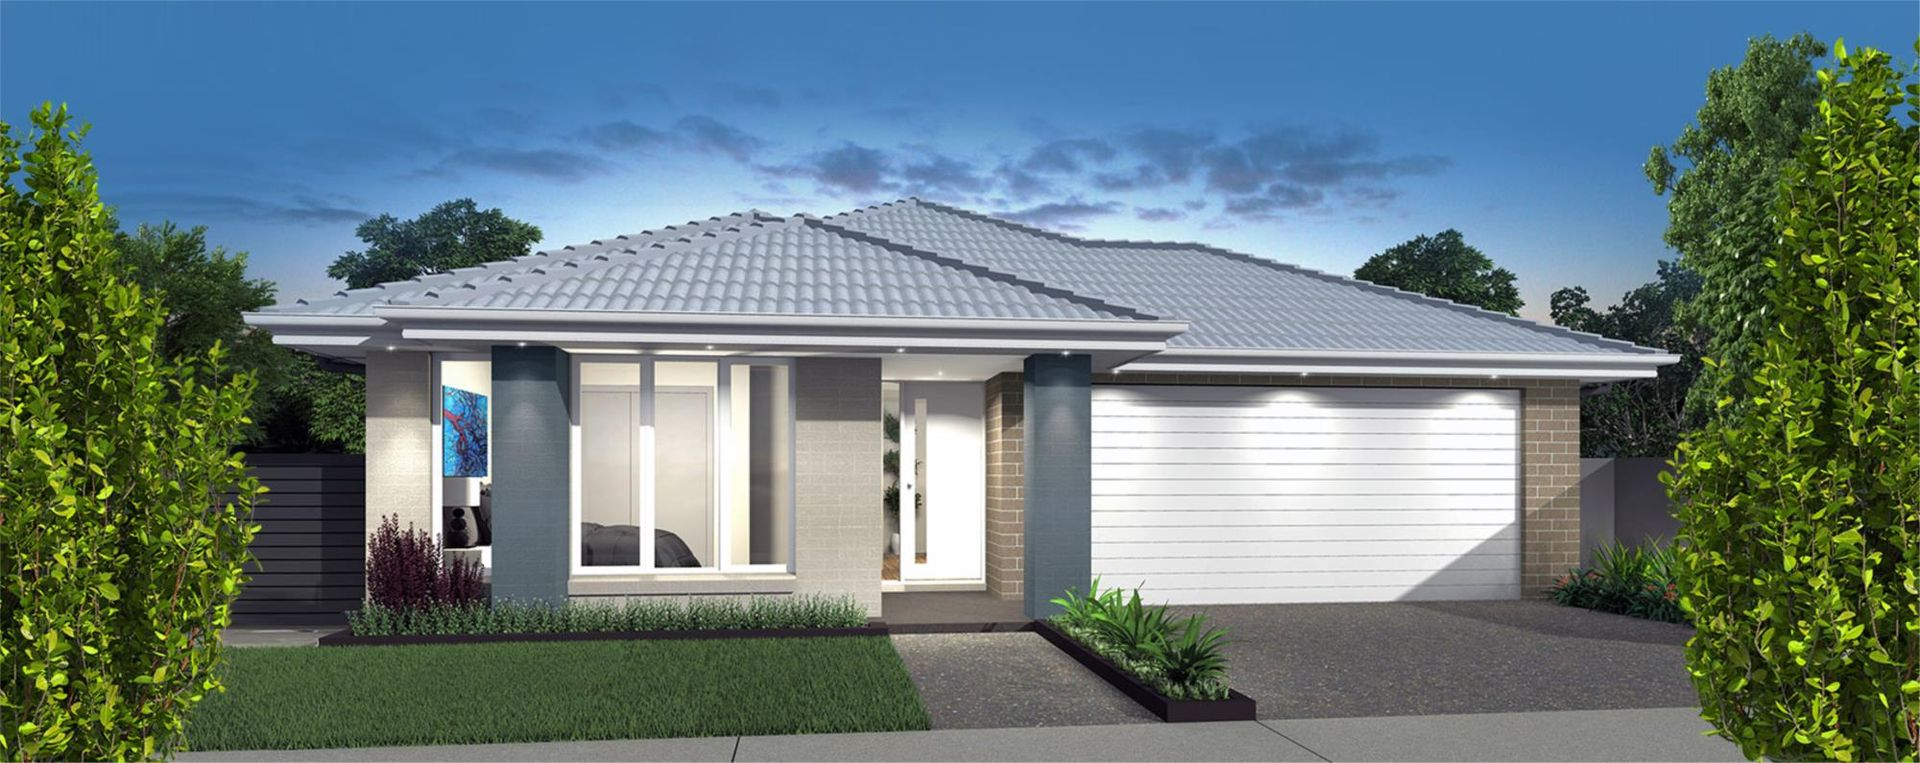 Lot 408 Proposed Rd (Brentwood Estate), Thornton NSW 2322, Image 0